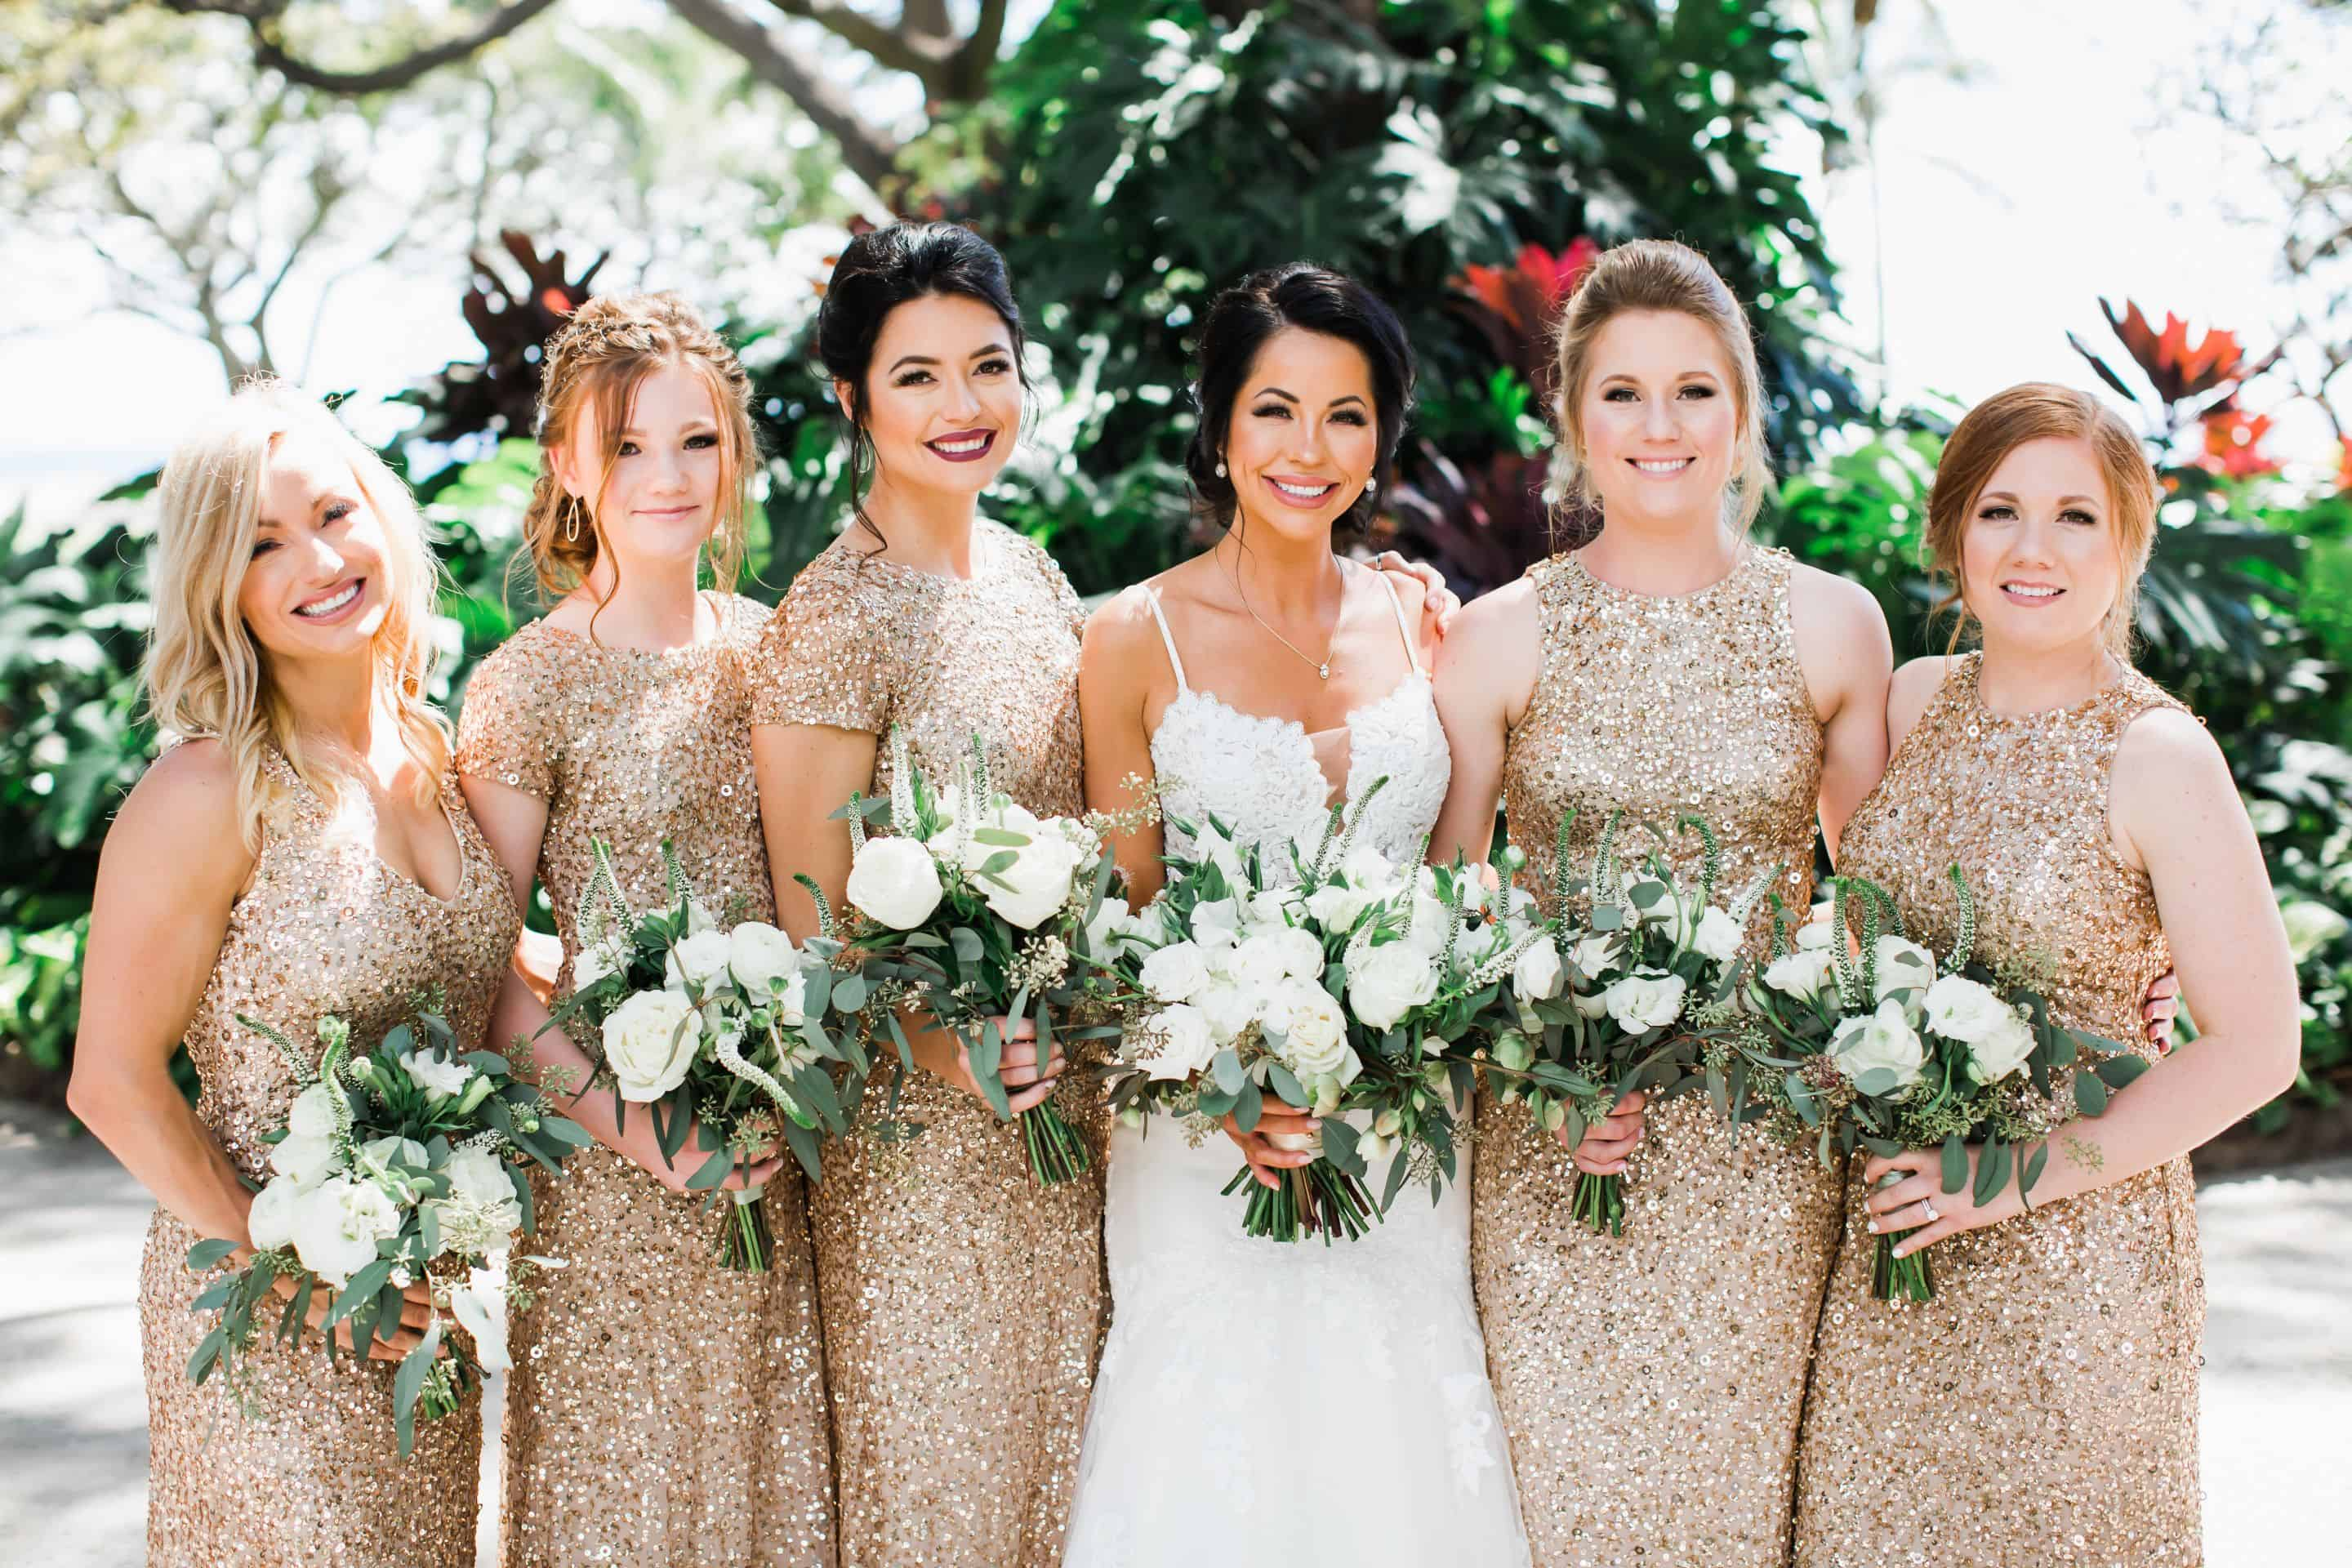 Bridesmaids in gold sparkly dresses with white bouquets | Maui's Angels